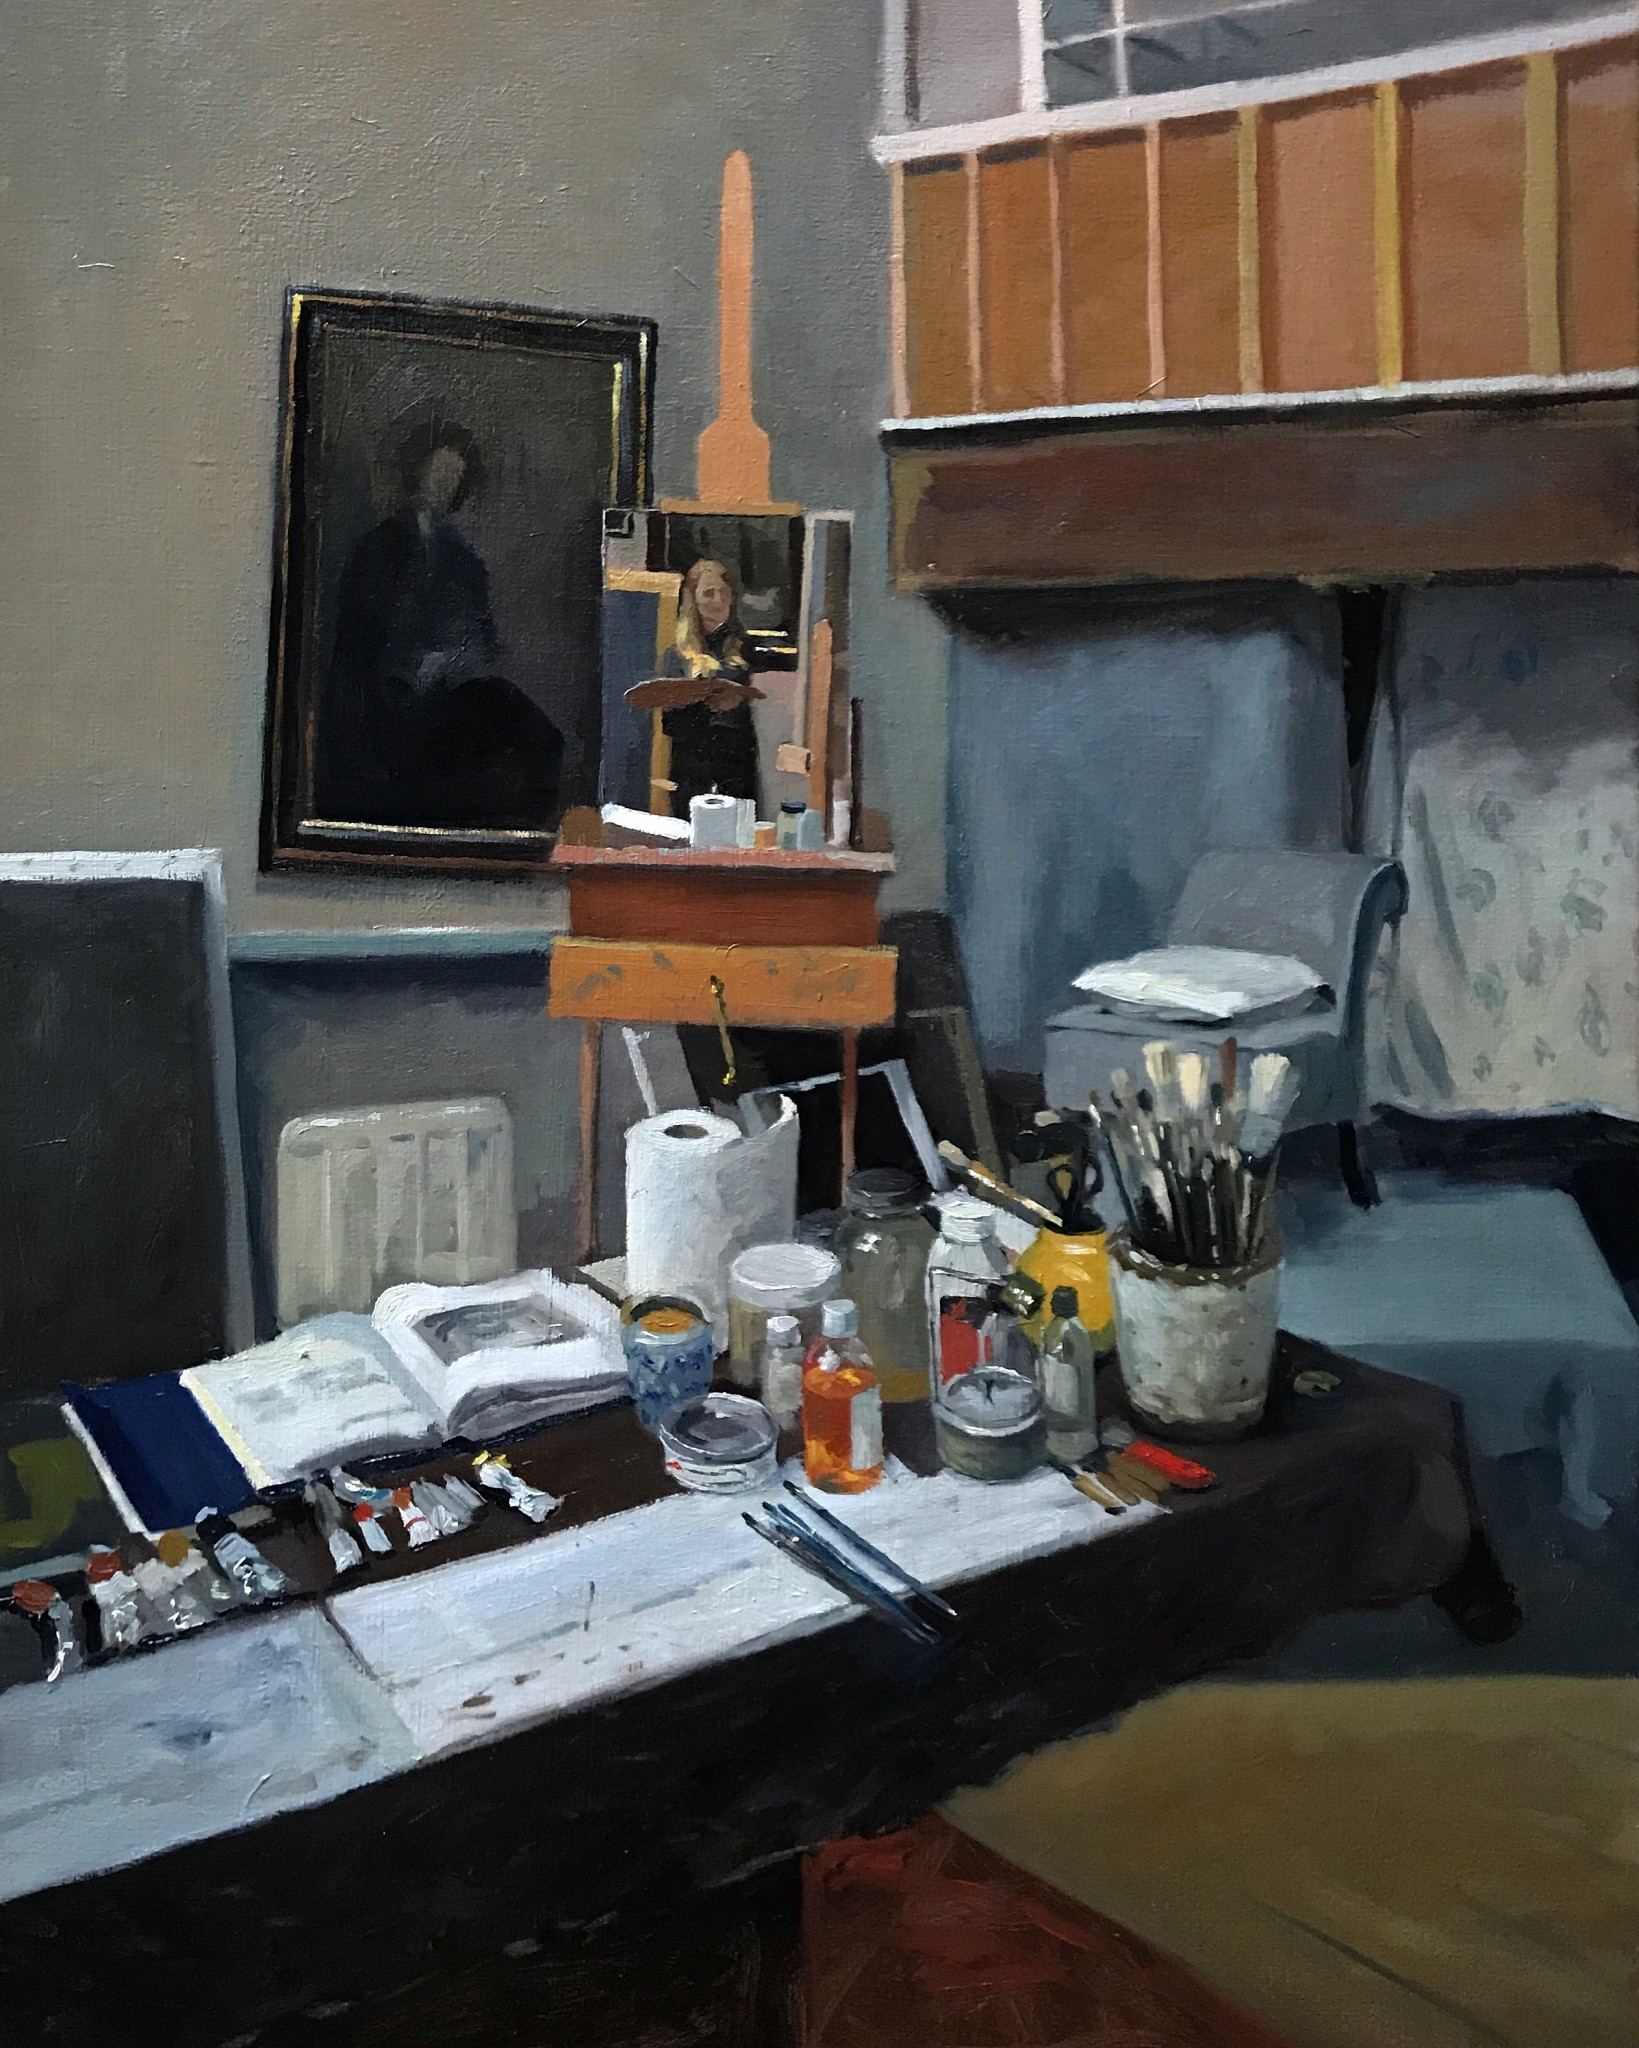 Studio Interior, Self Portrait in Mirror